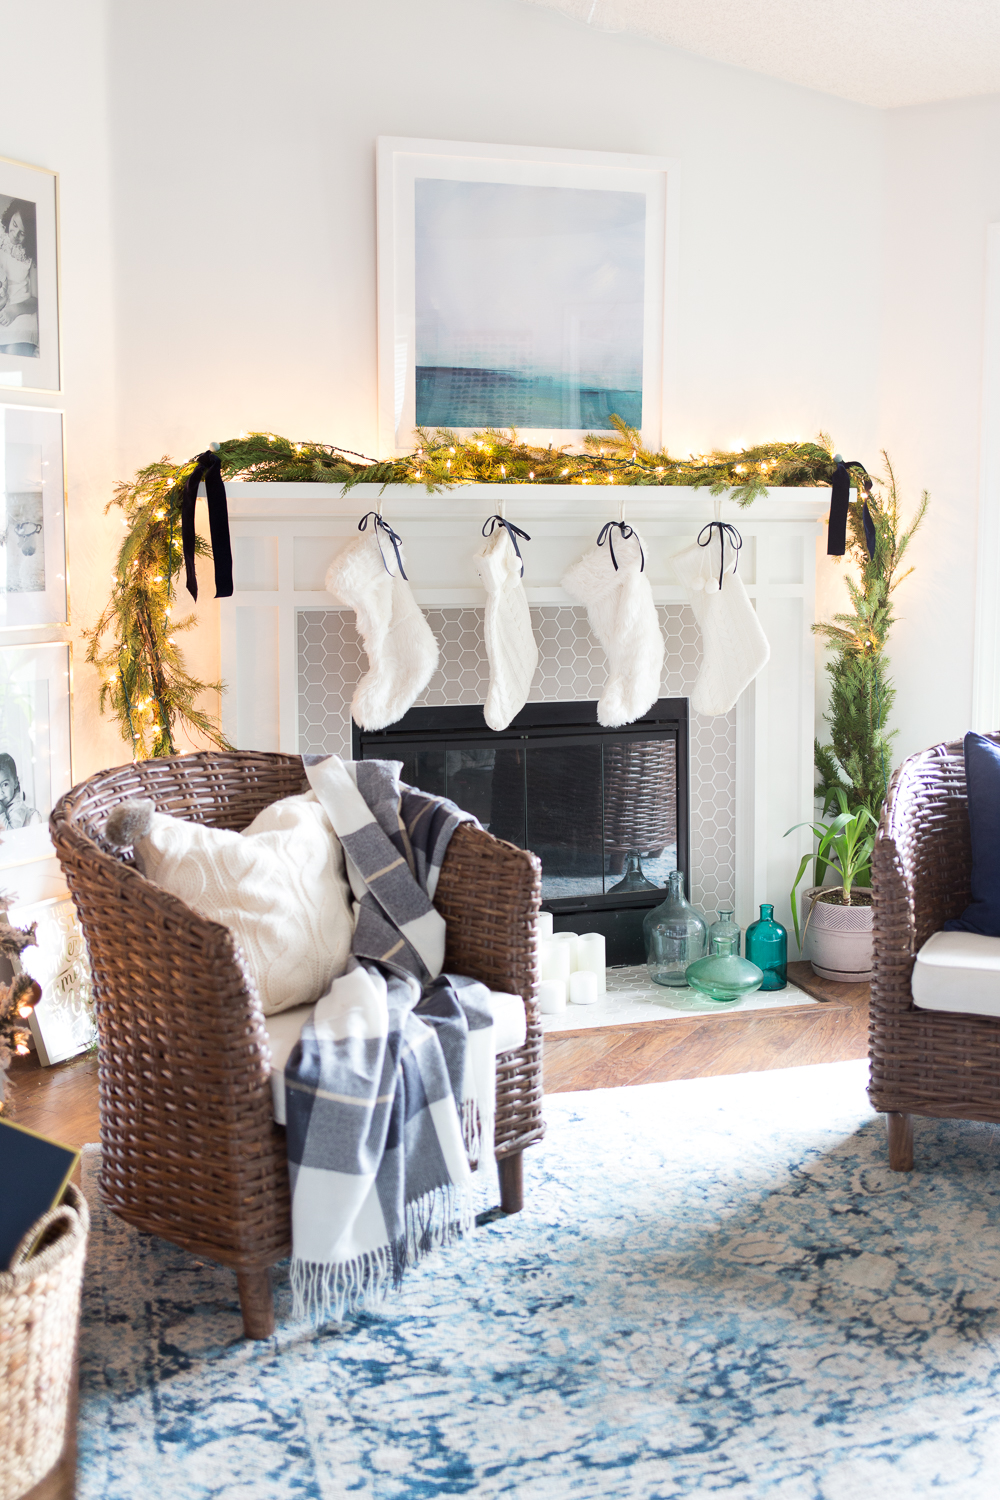 Blue and white decorating for the holidays